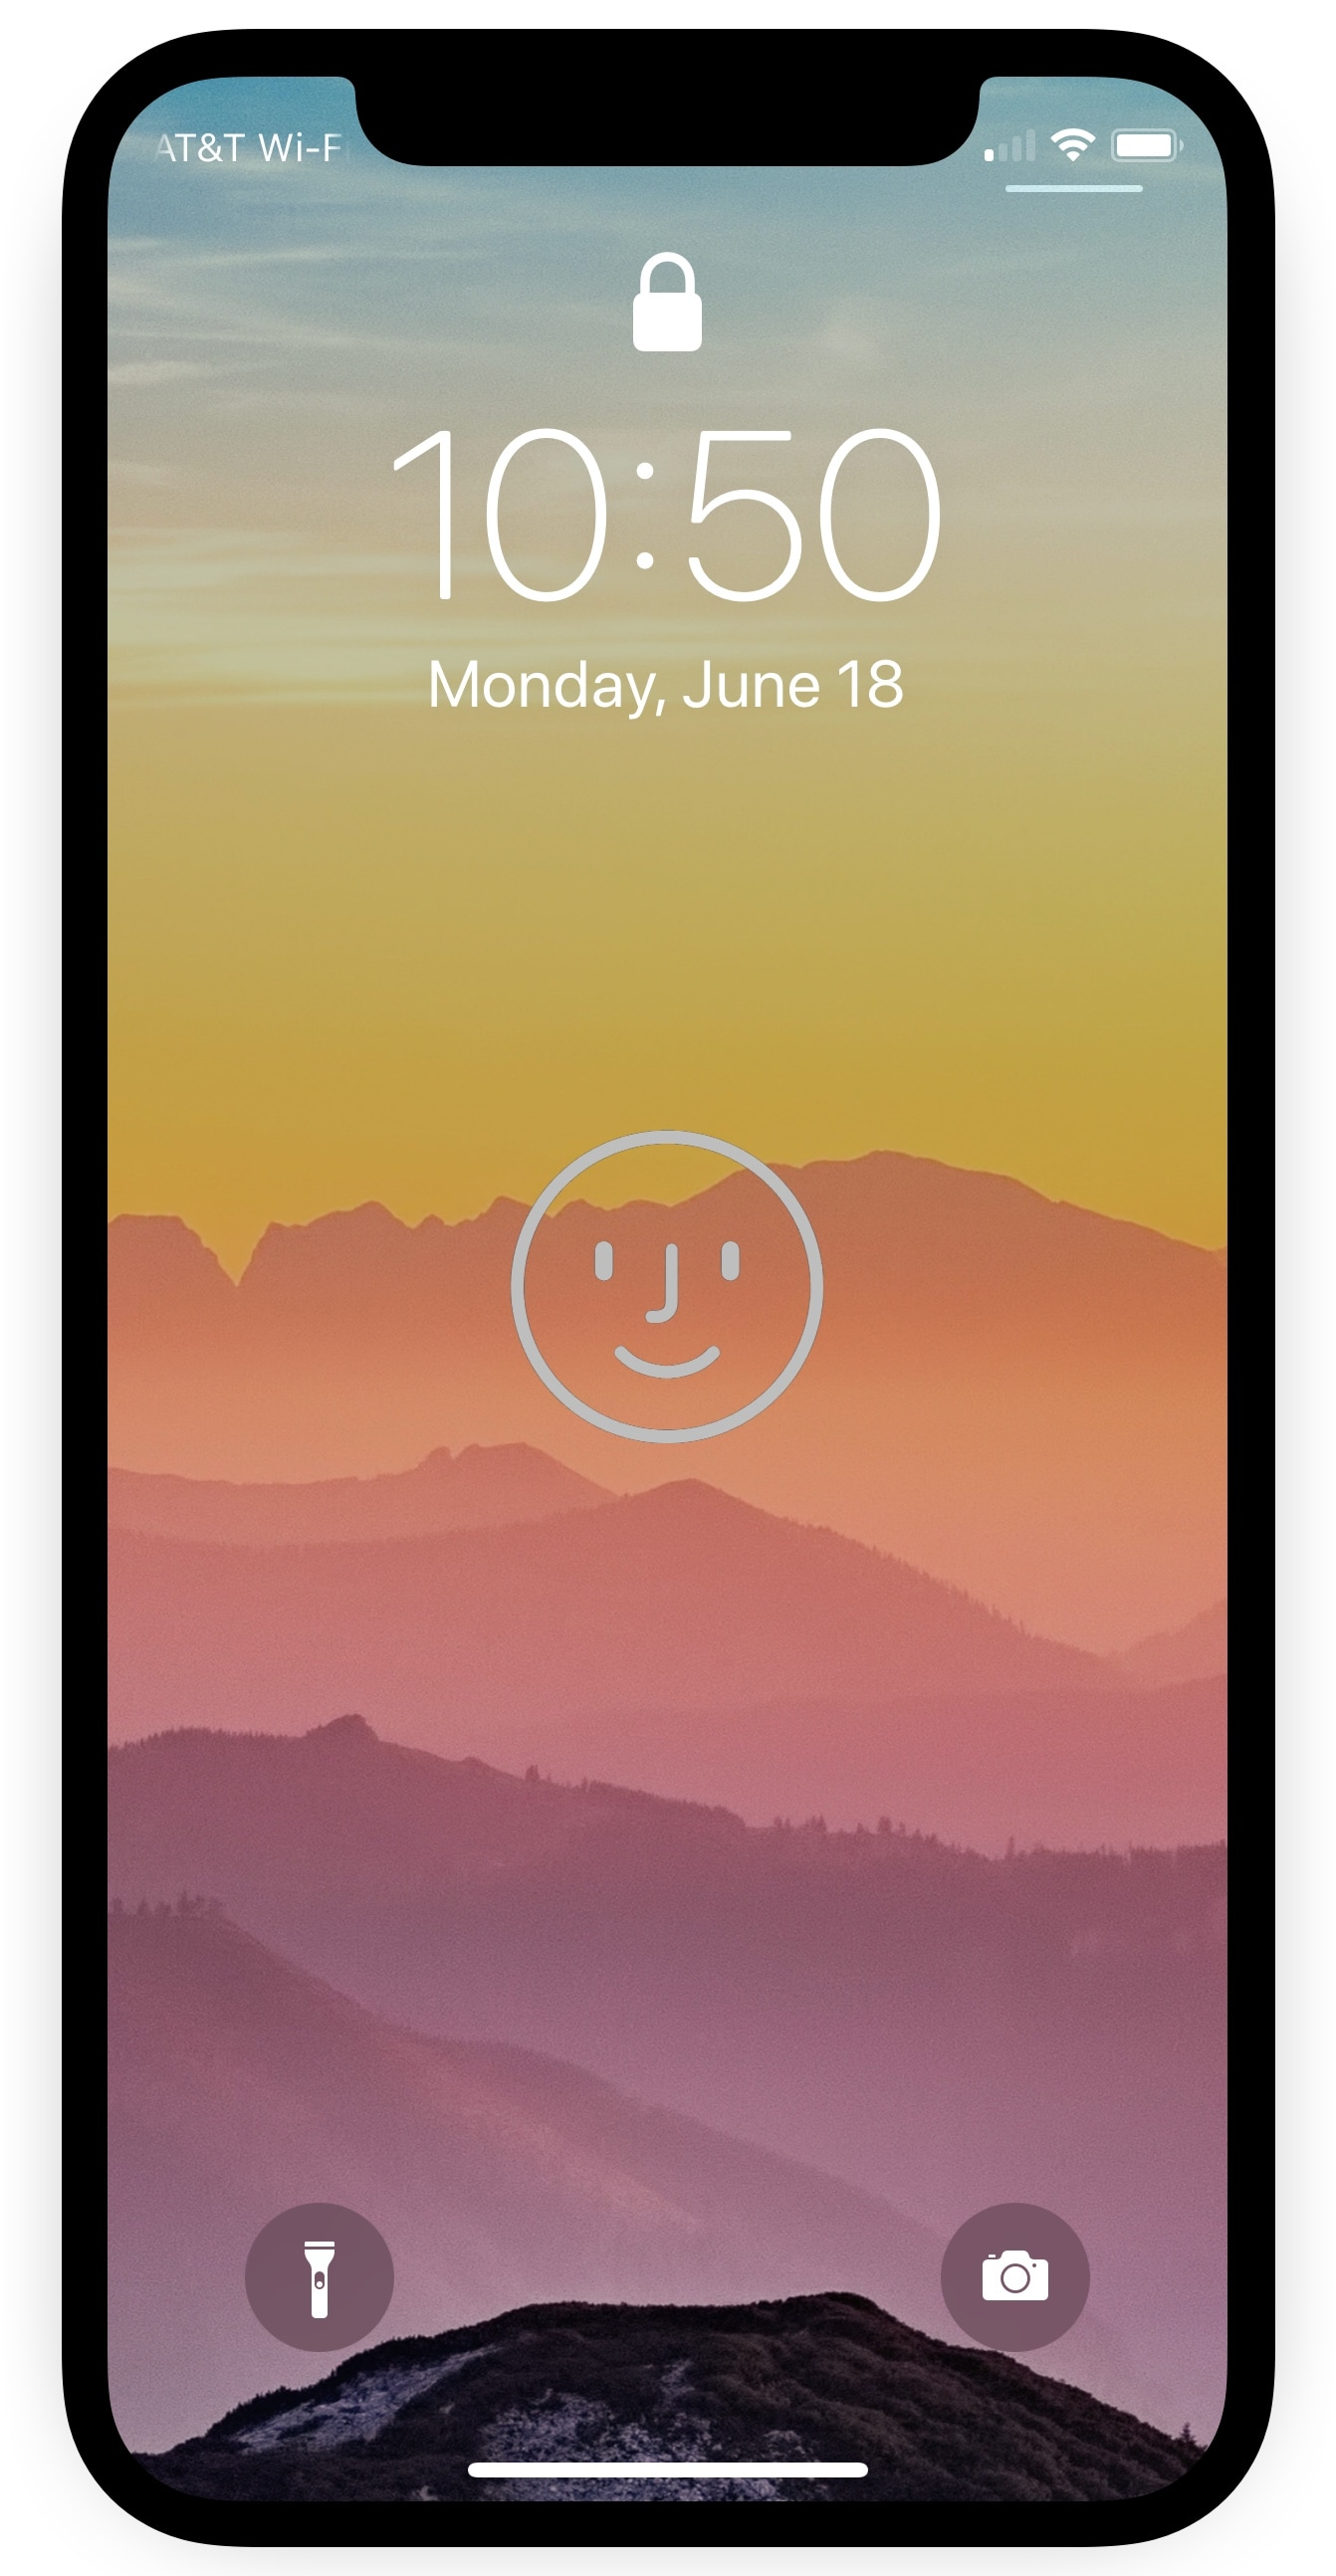 Retry failed Face ID unlocking attempts automatically with